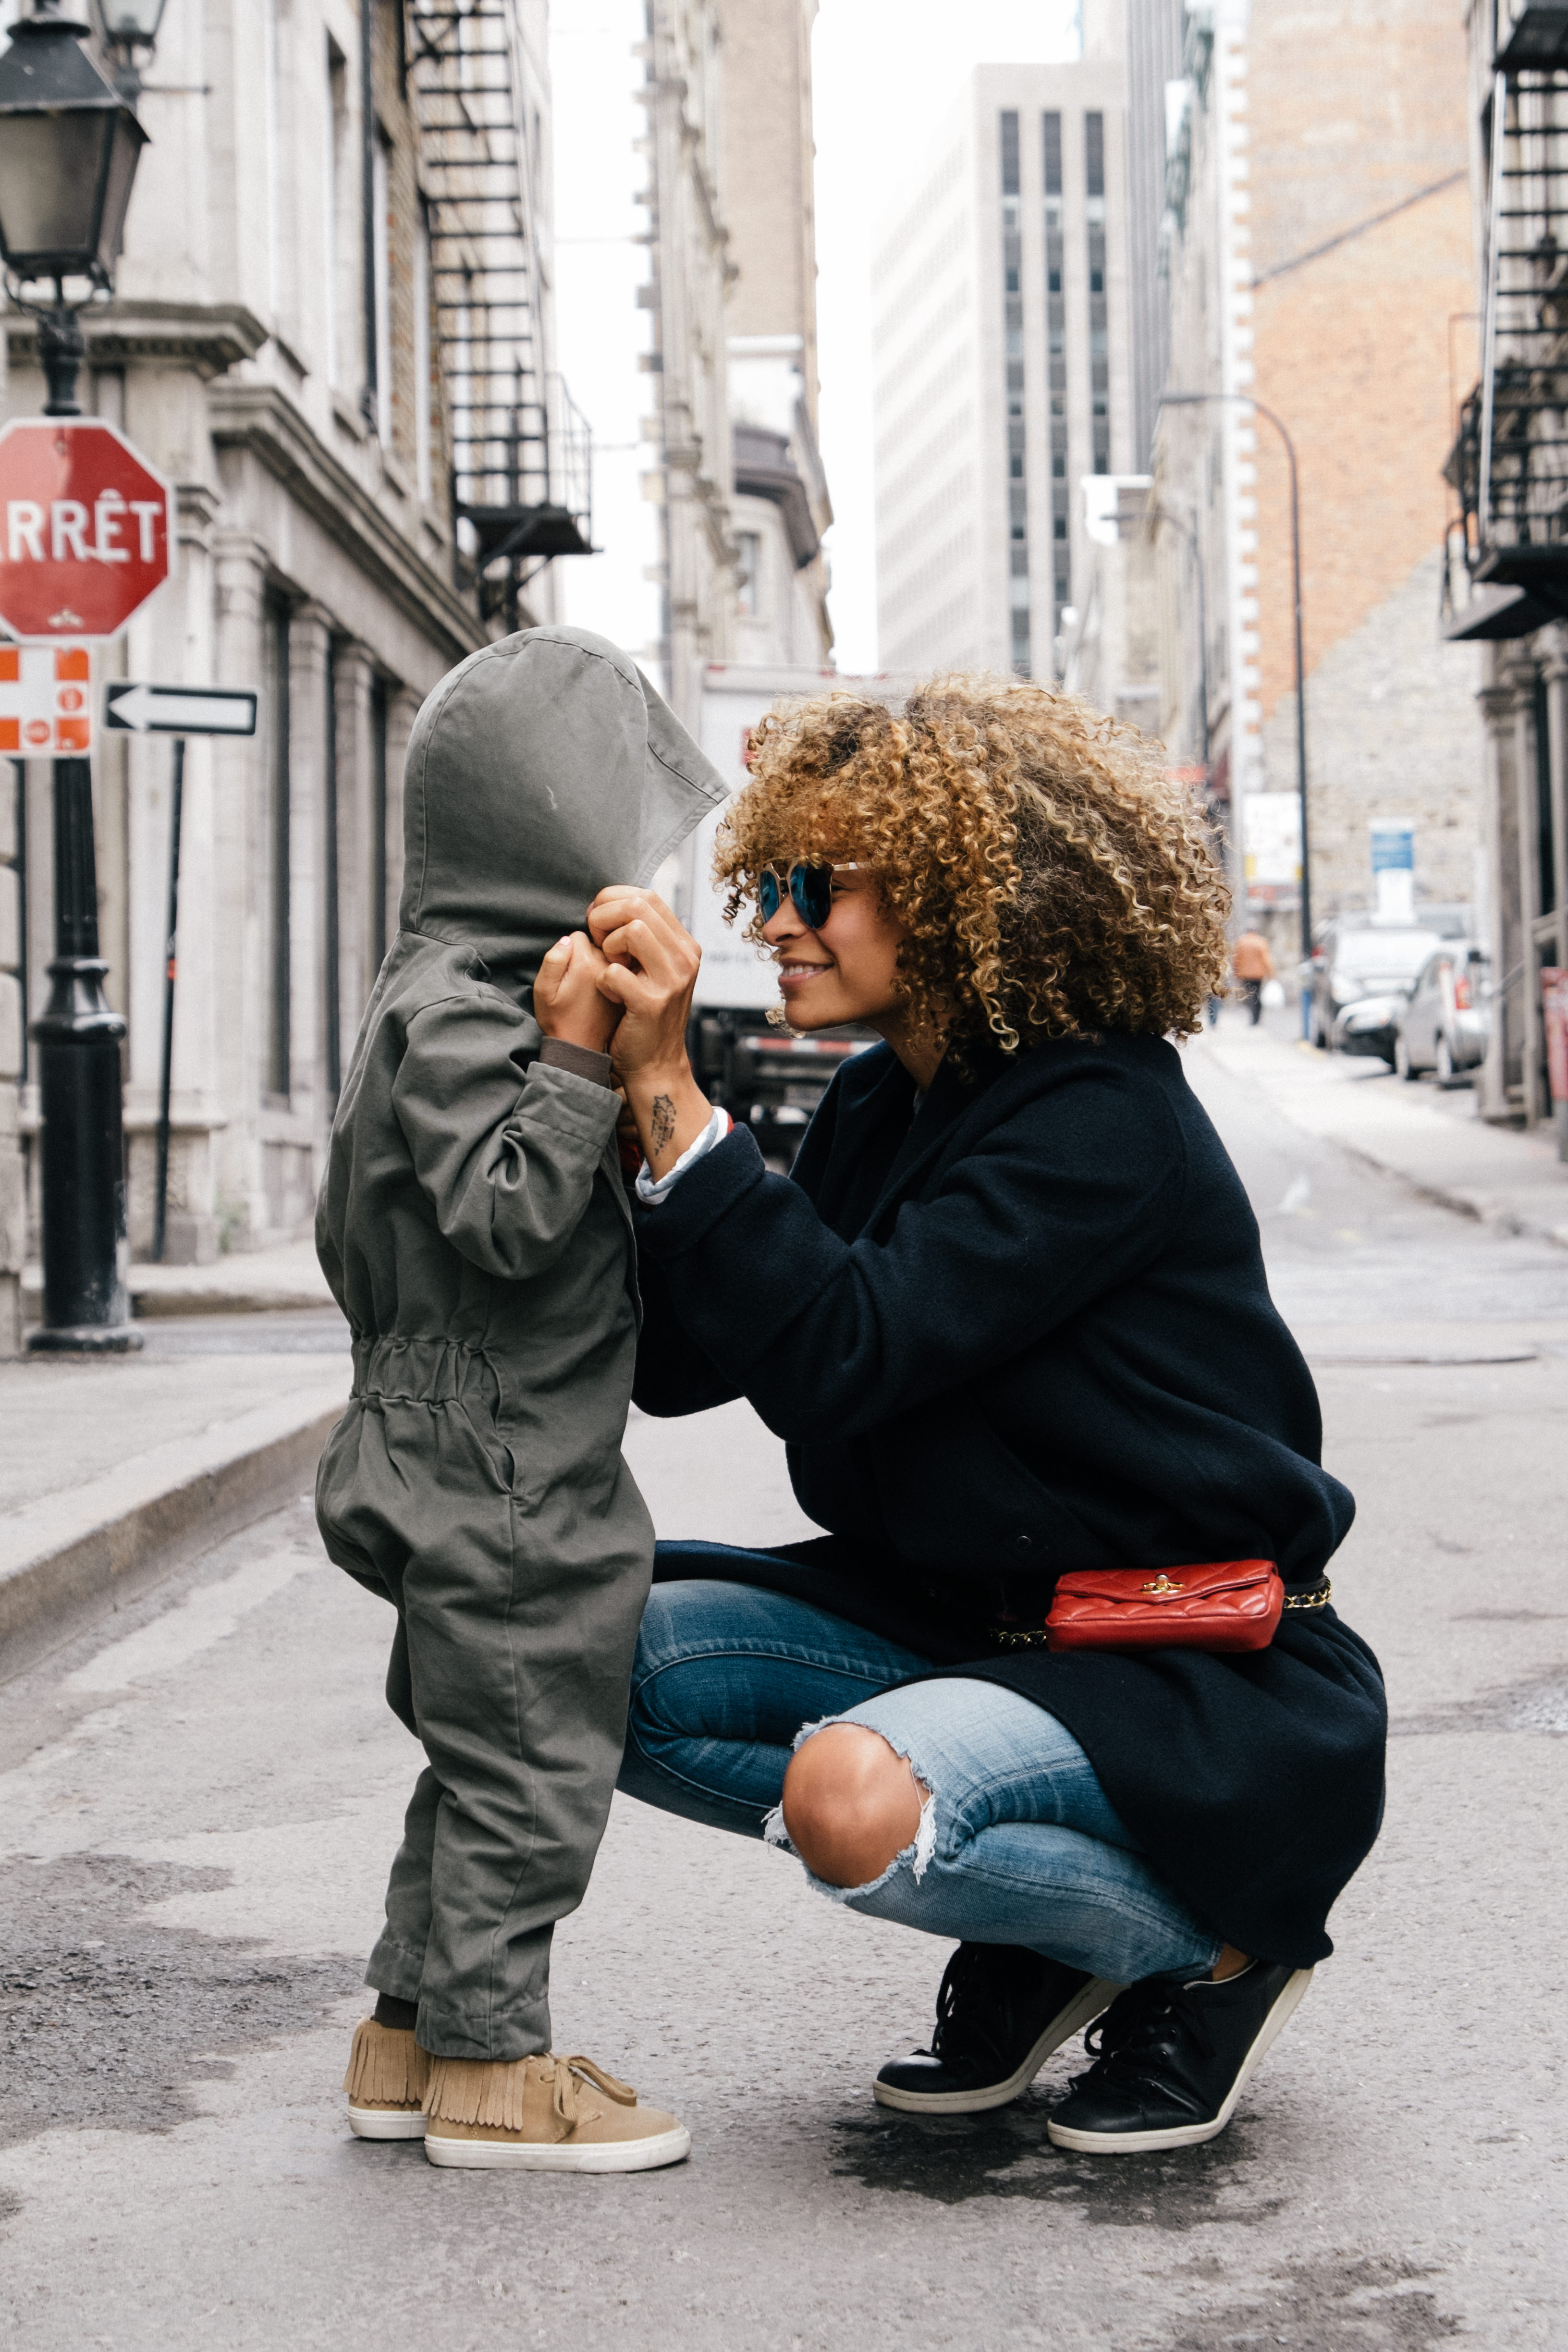 How to Build Self-Confidence in Kids